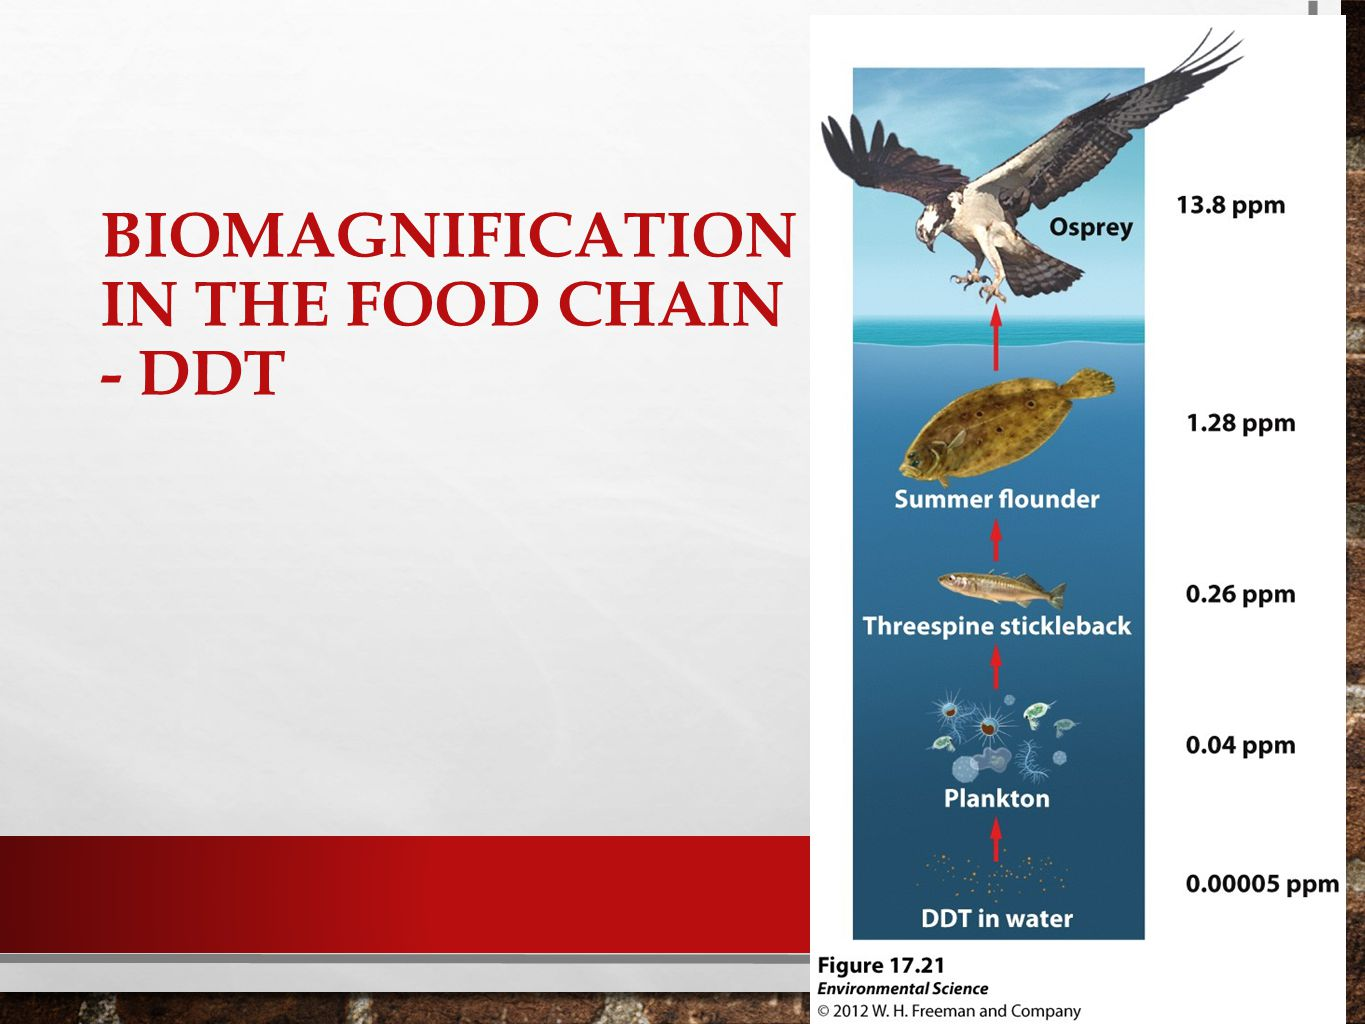 Biomagnification in the food chain - DDT